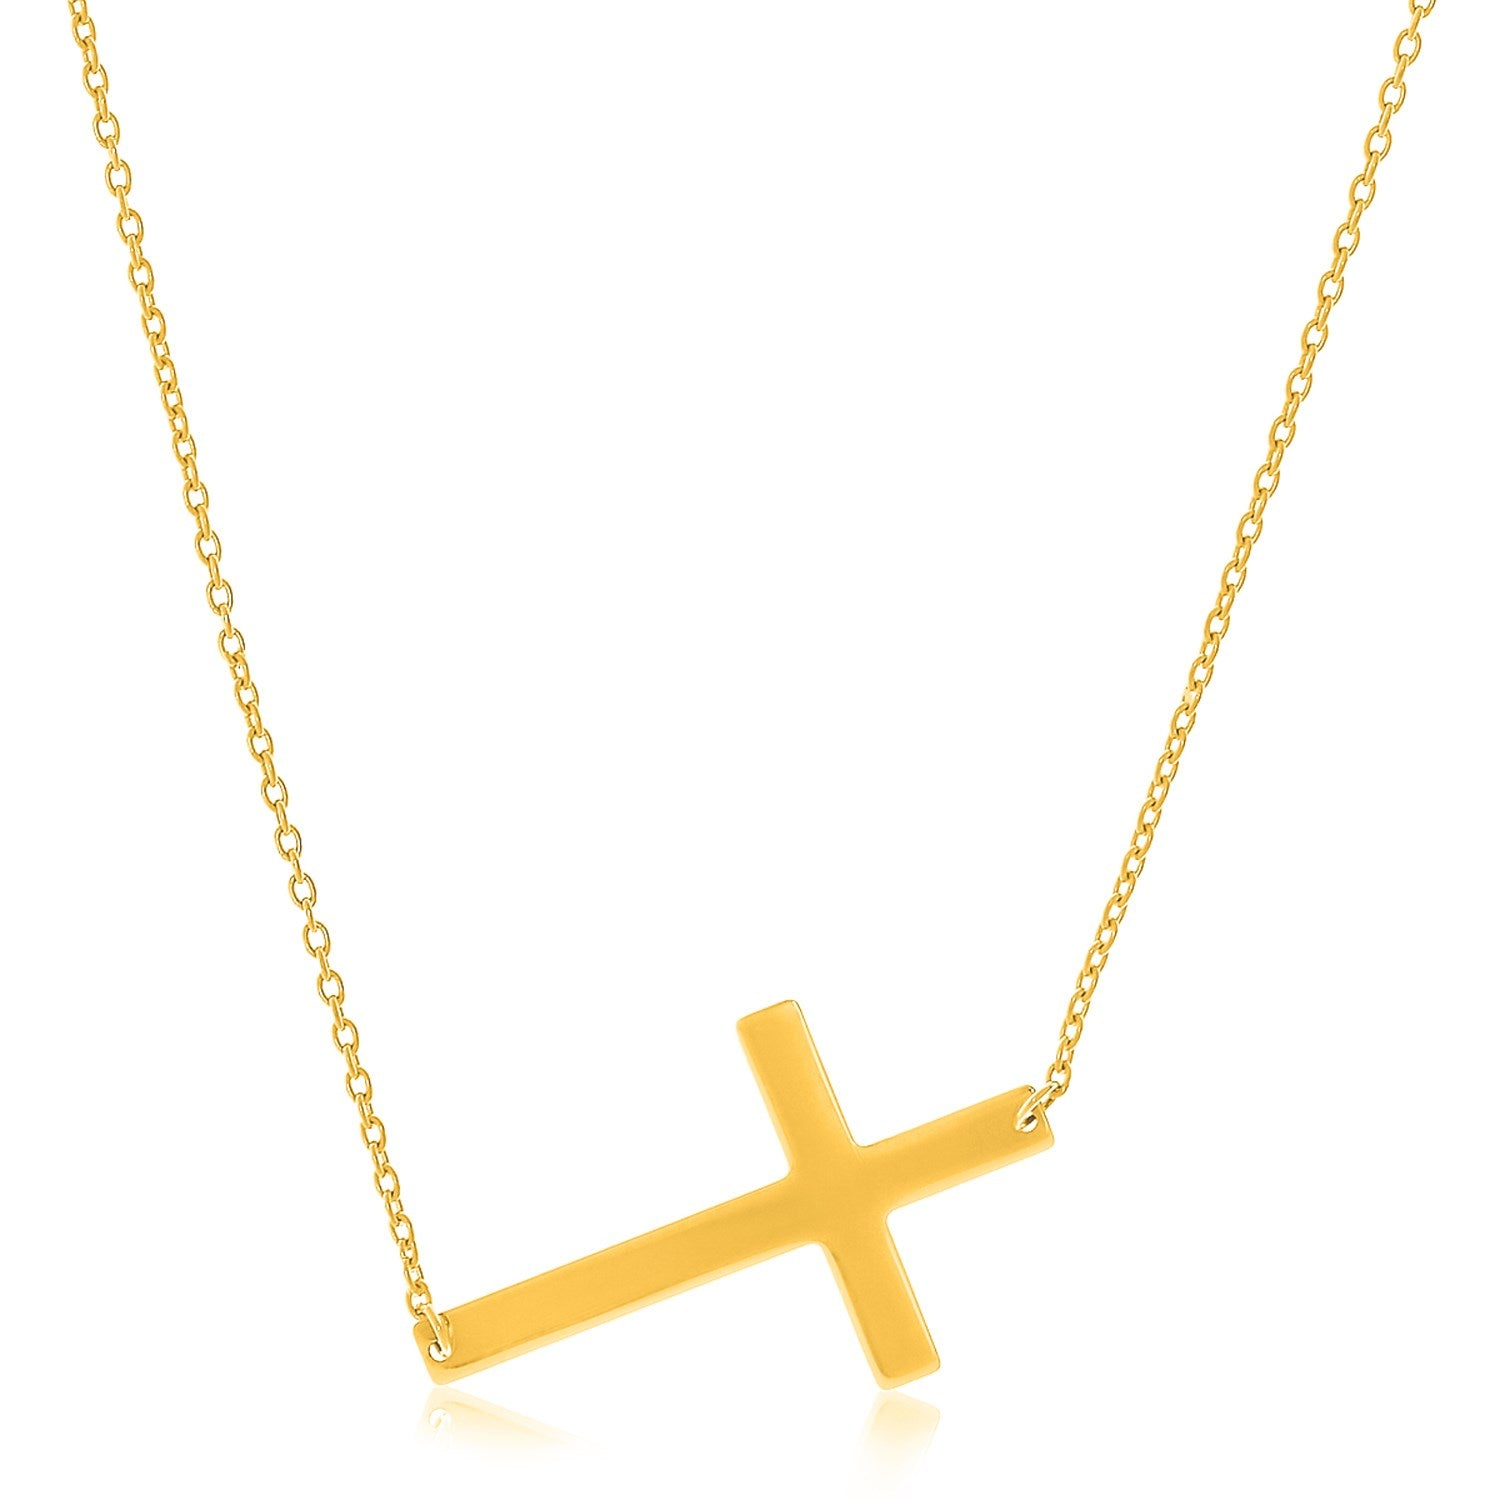 Flat Crucifix Necklace in 14k Yellow Gold